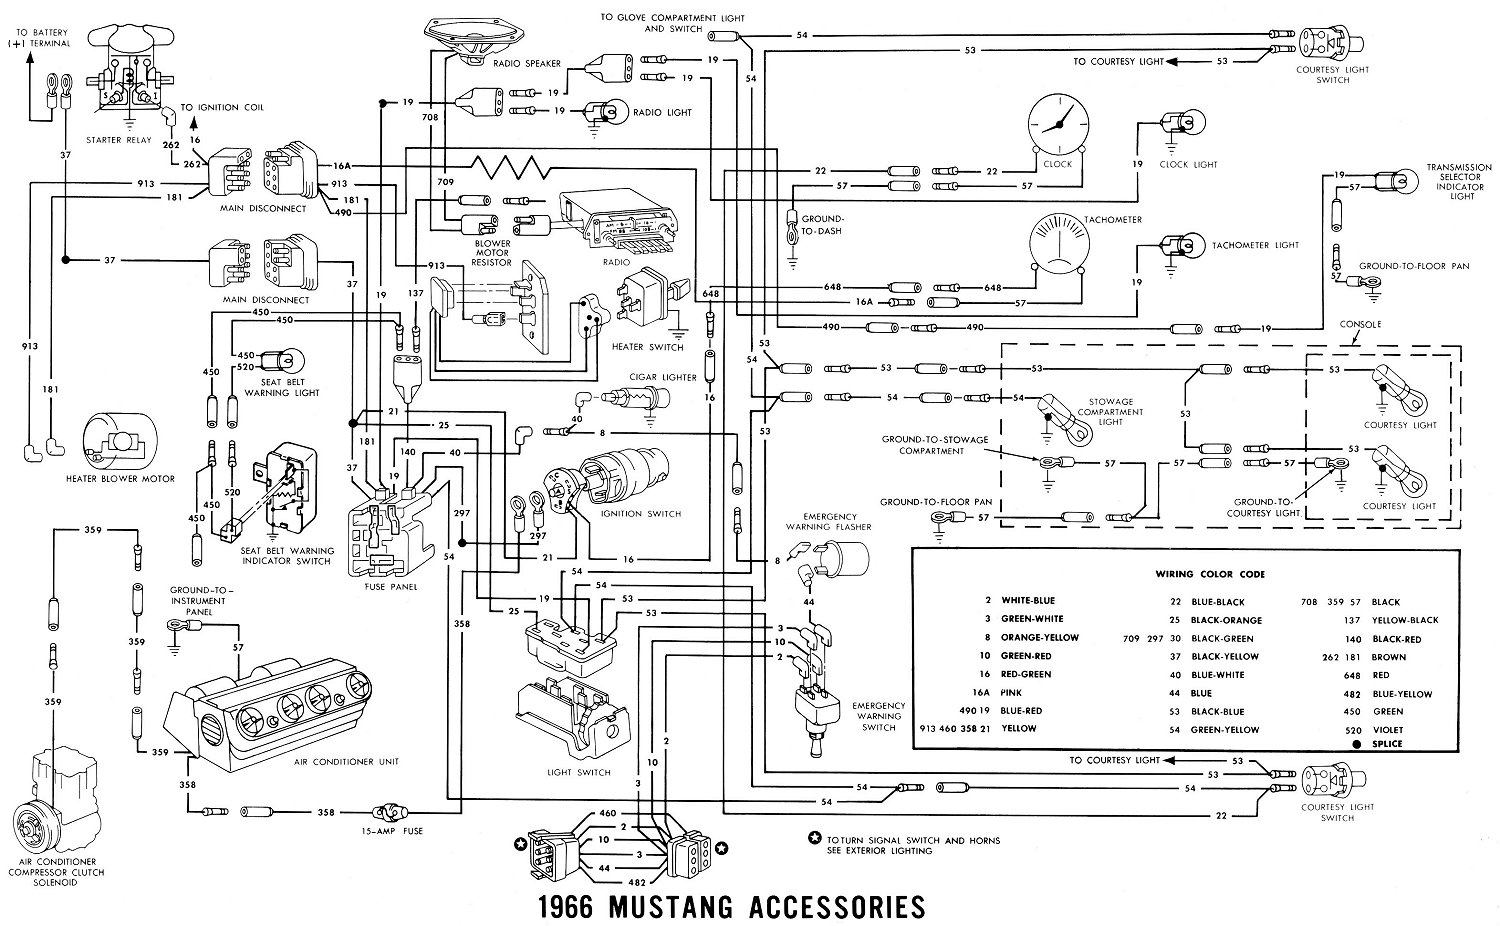 1966 Mustang Wiring Diagrams Average Joe Restoration Question On Diagram Headlight Dimmer Switch Dy Se In The Schematic